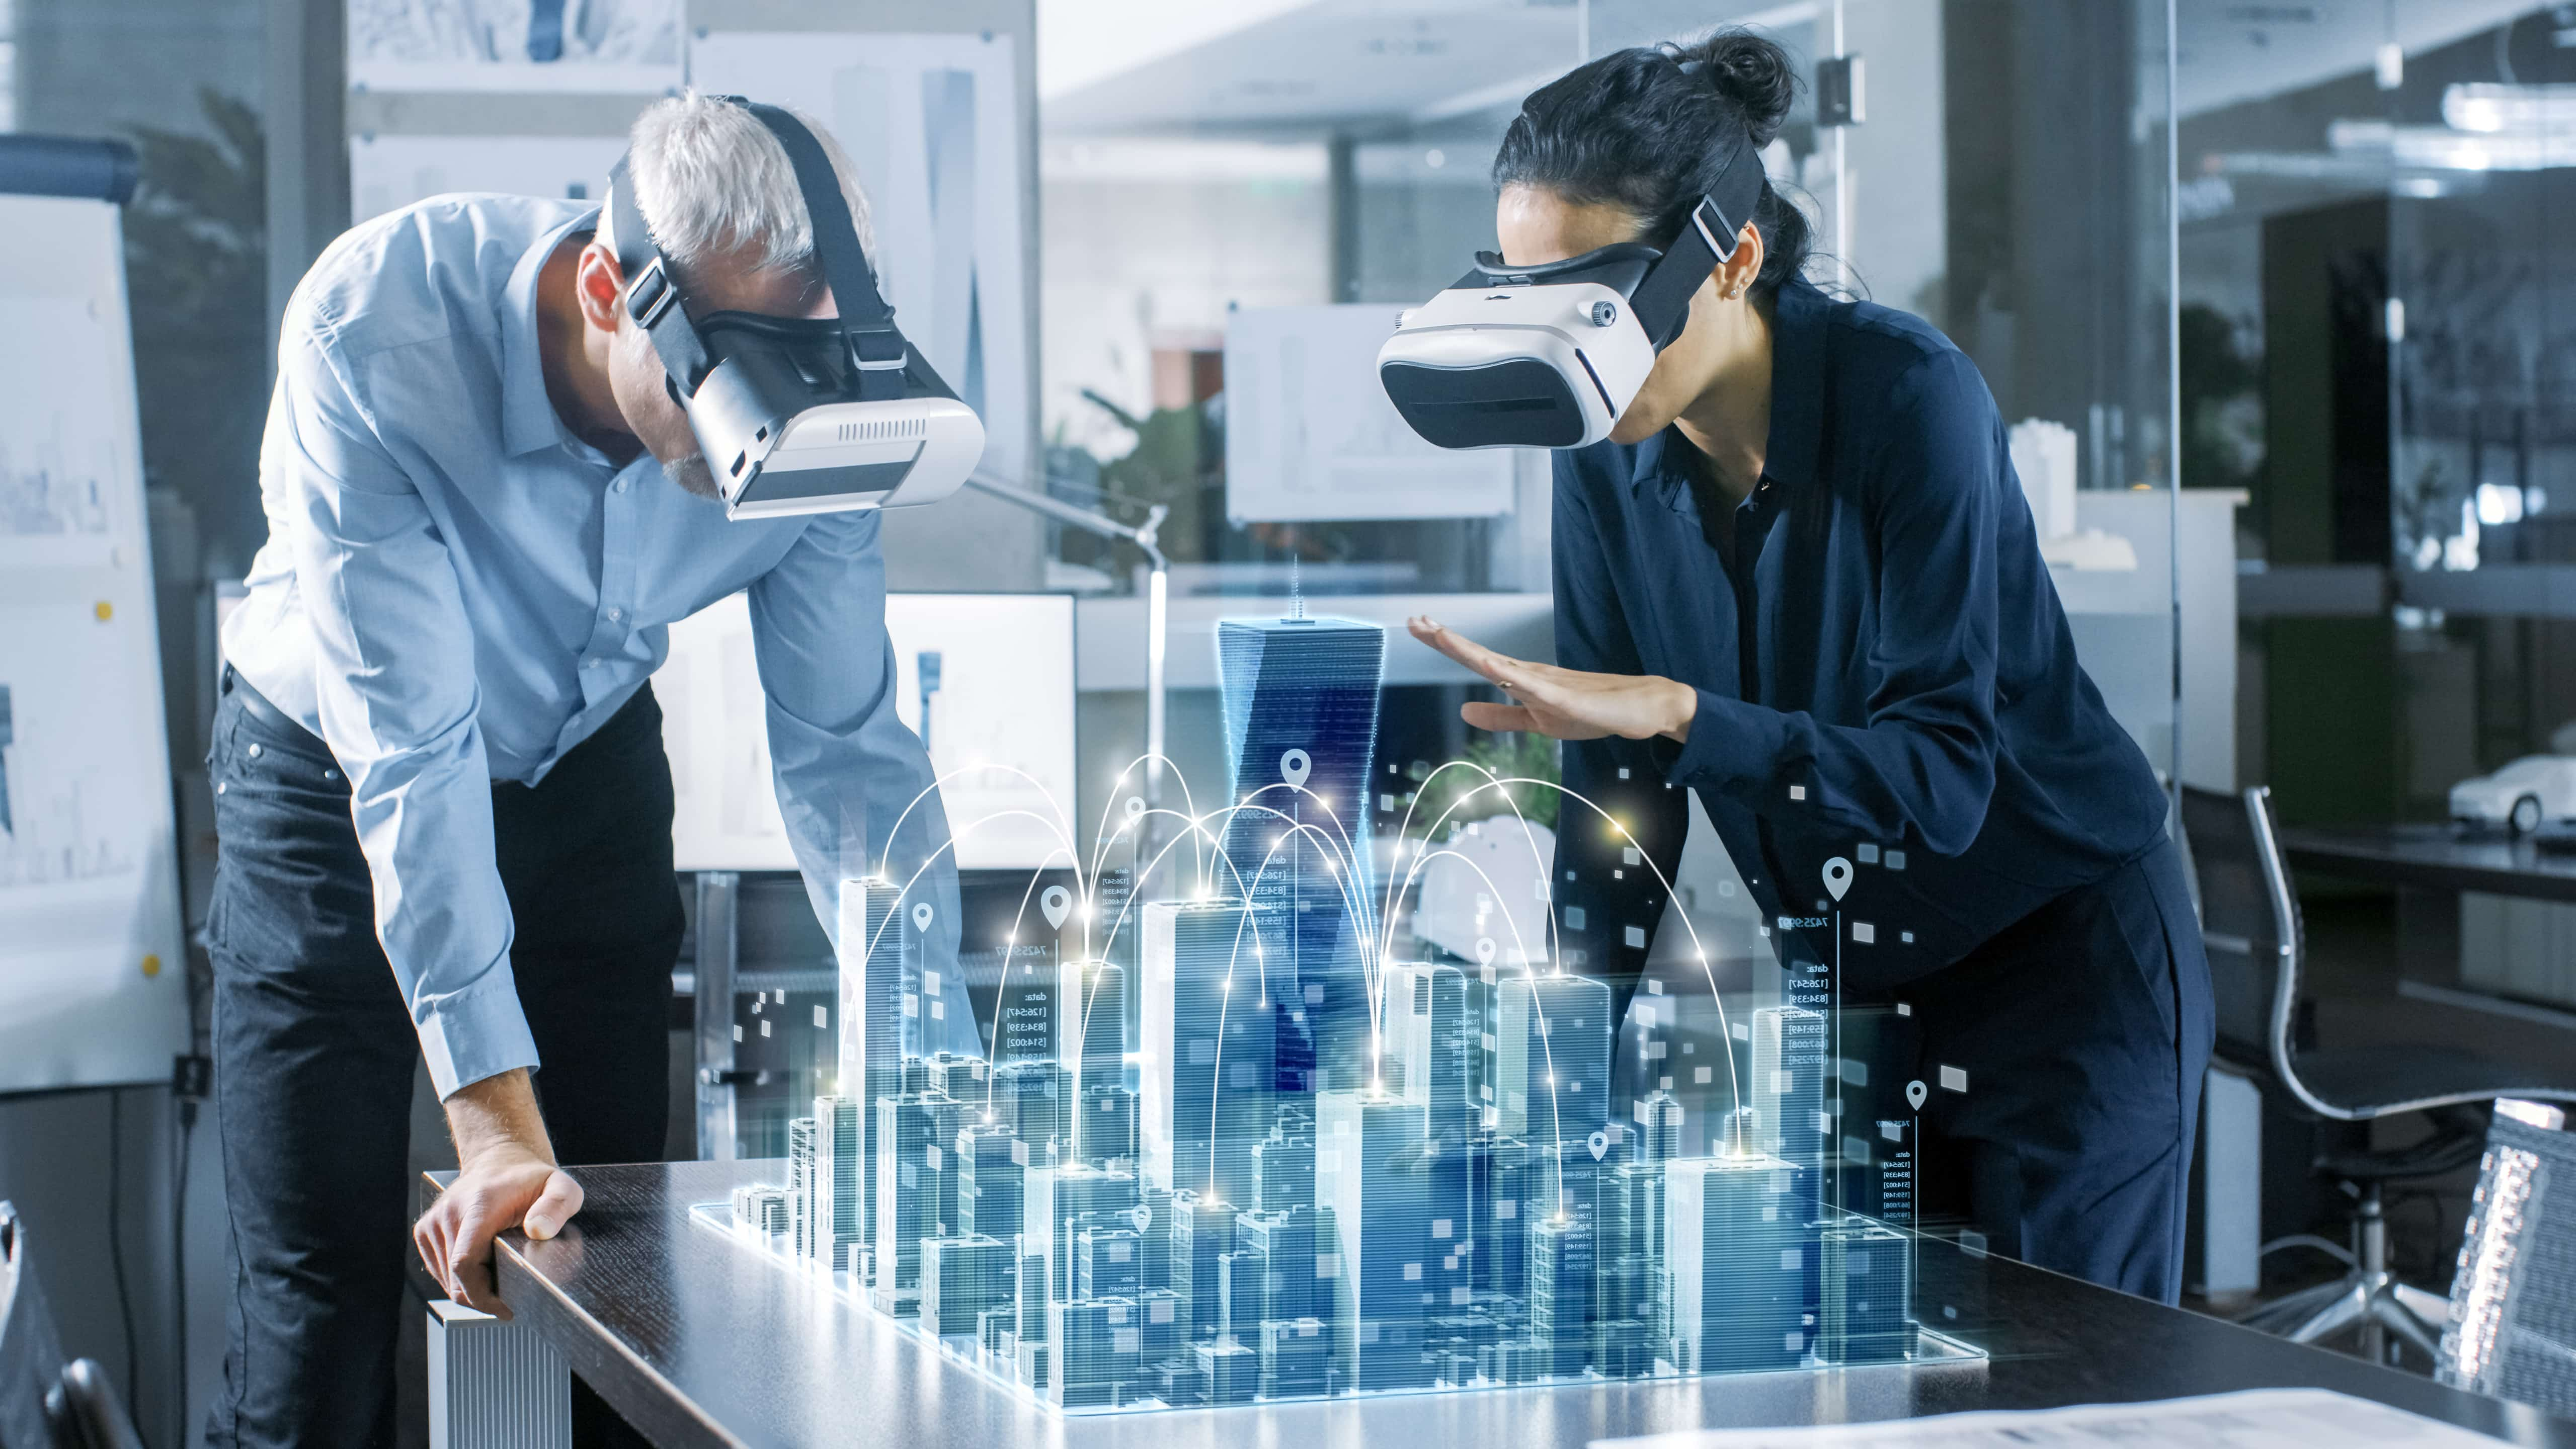 virtual reality and augmented reality used in business setting